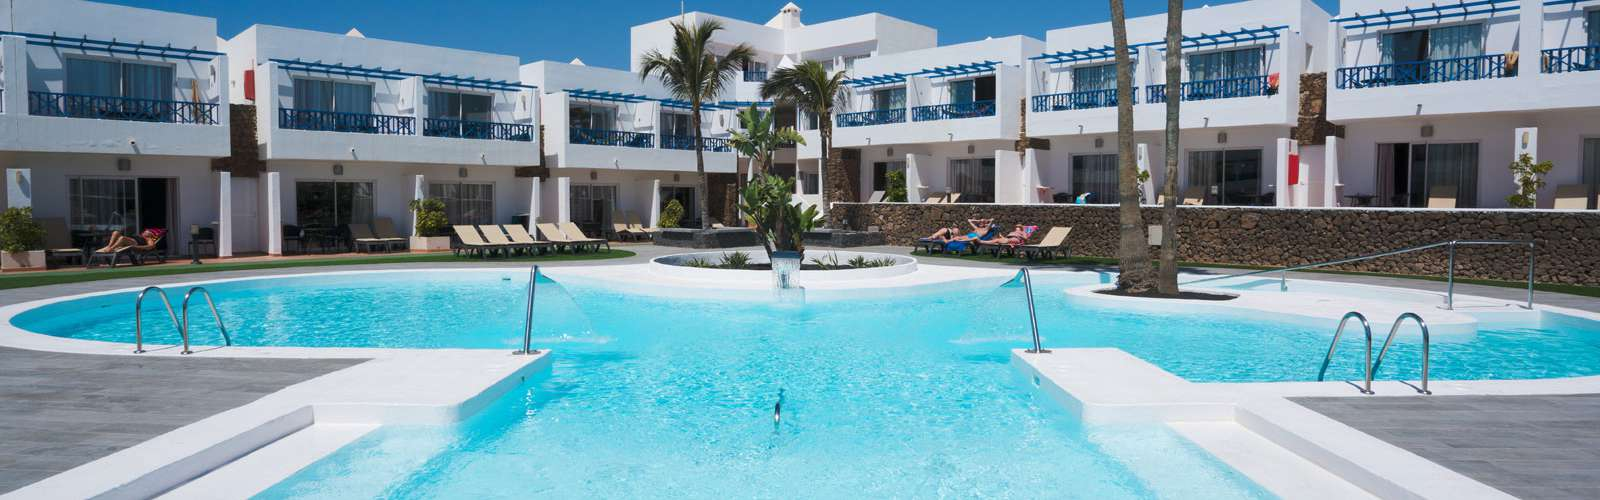 Lanzarote Hotel Deals | Club Siroco Apartments - Lanzarote